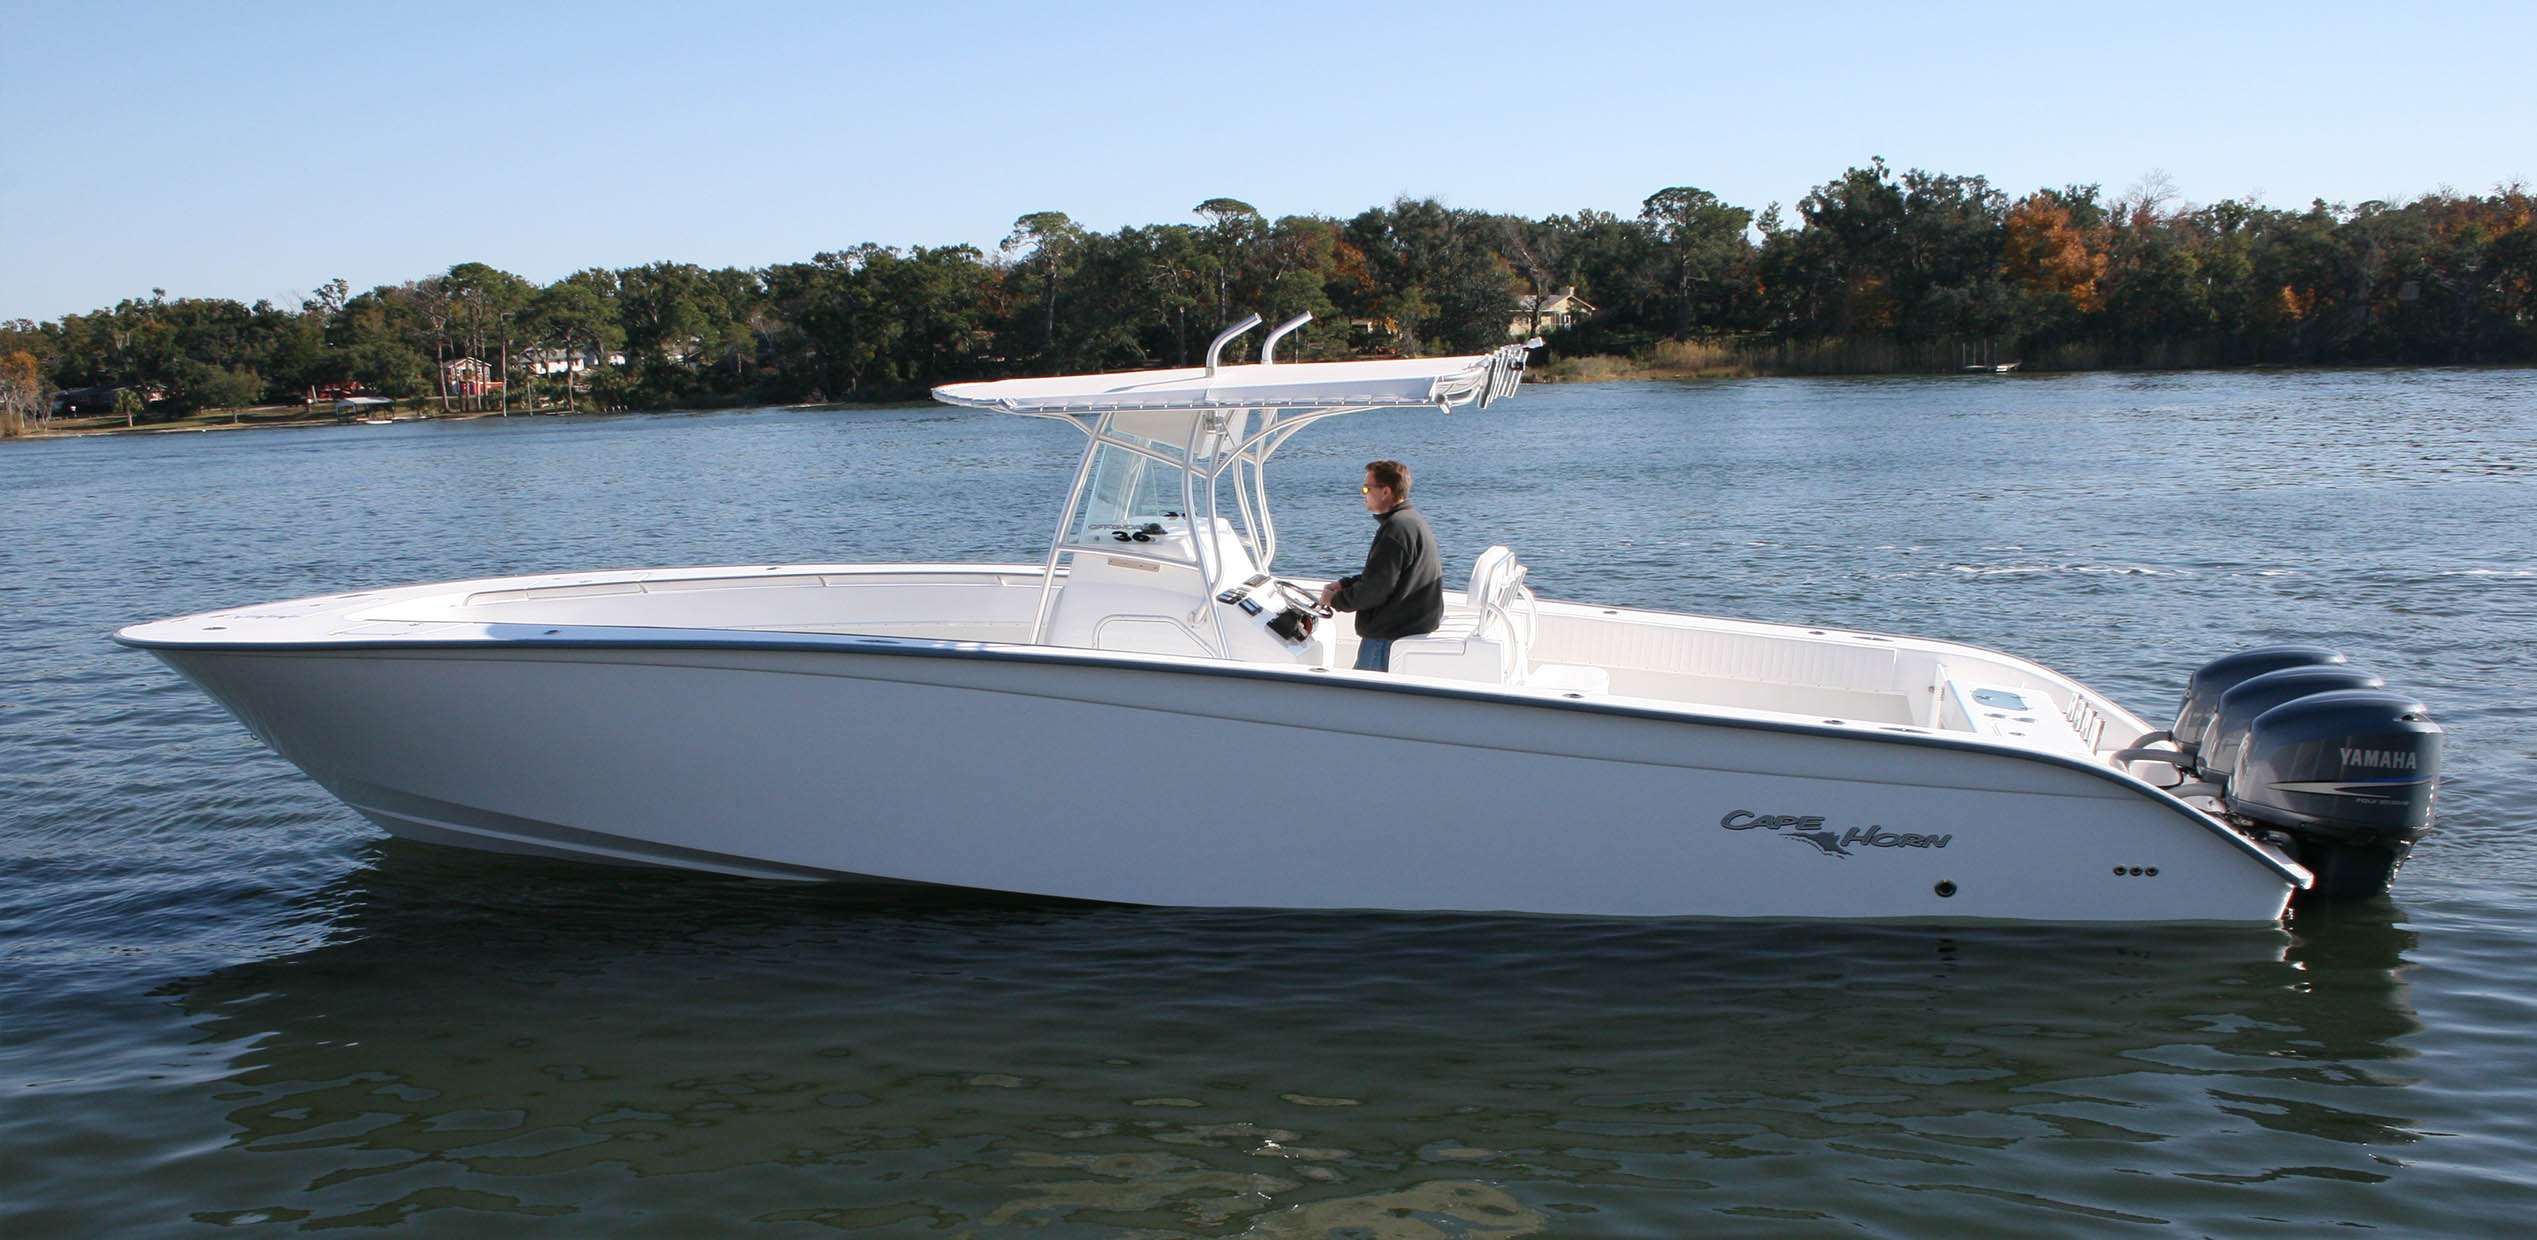 Cape Horn Boats For Sale >> Cape Horn Boats | Boats For Sale in Palm Beach FL | Nautical Ventures